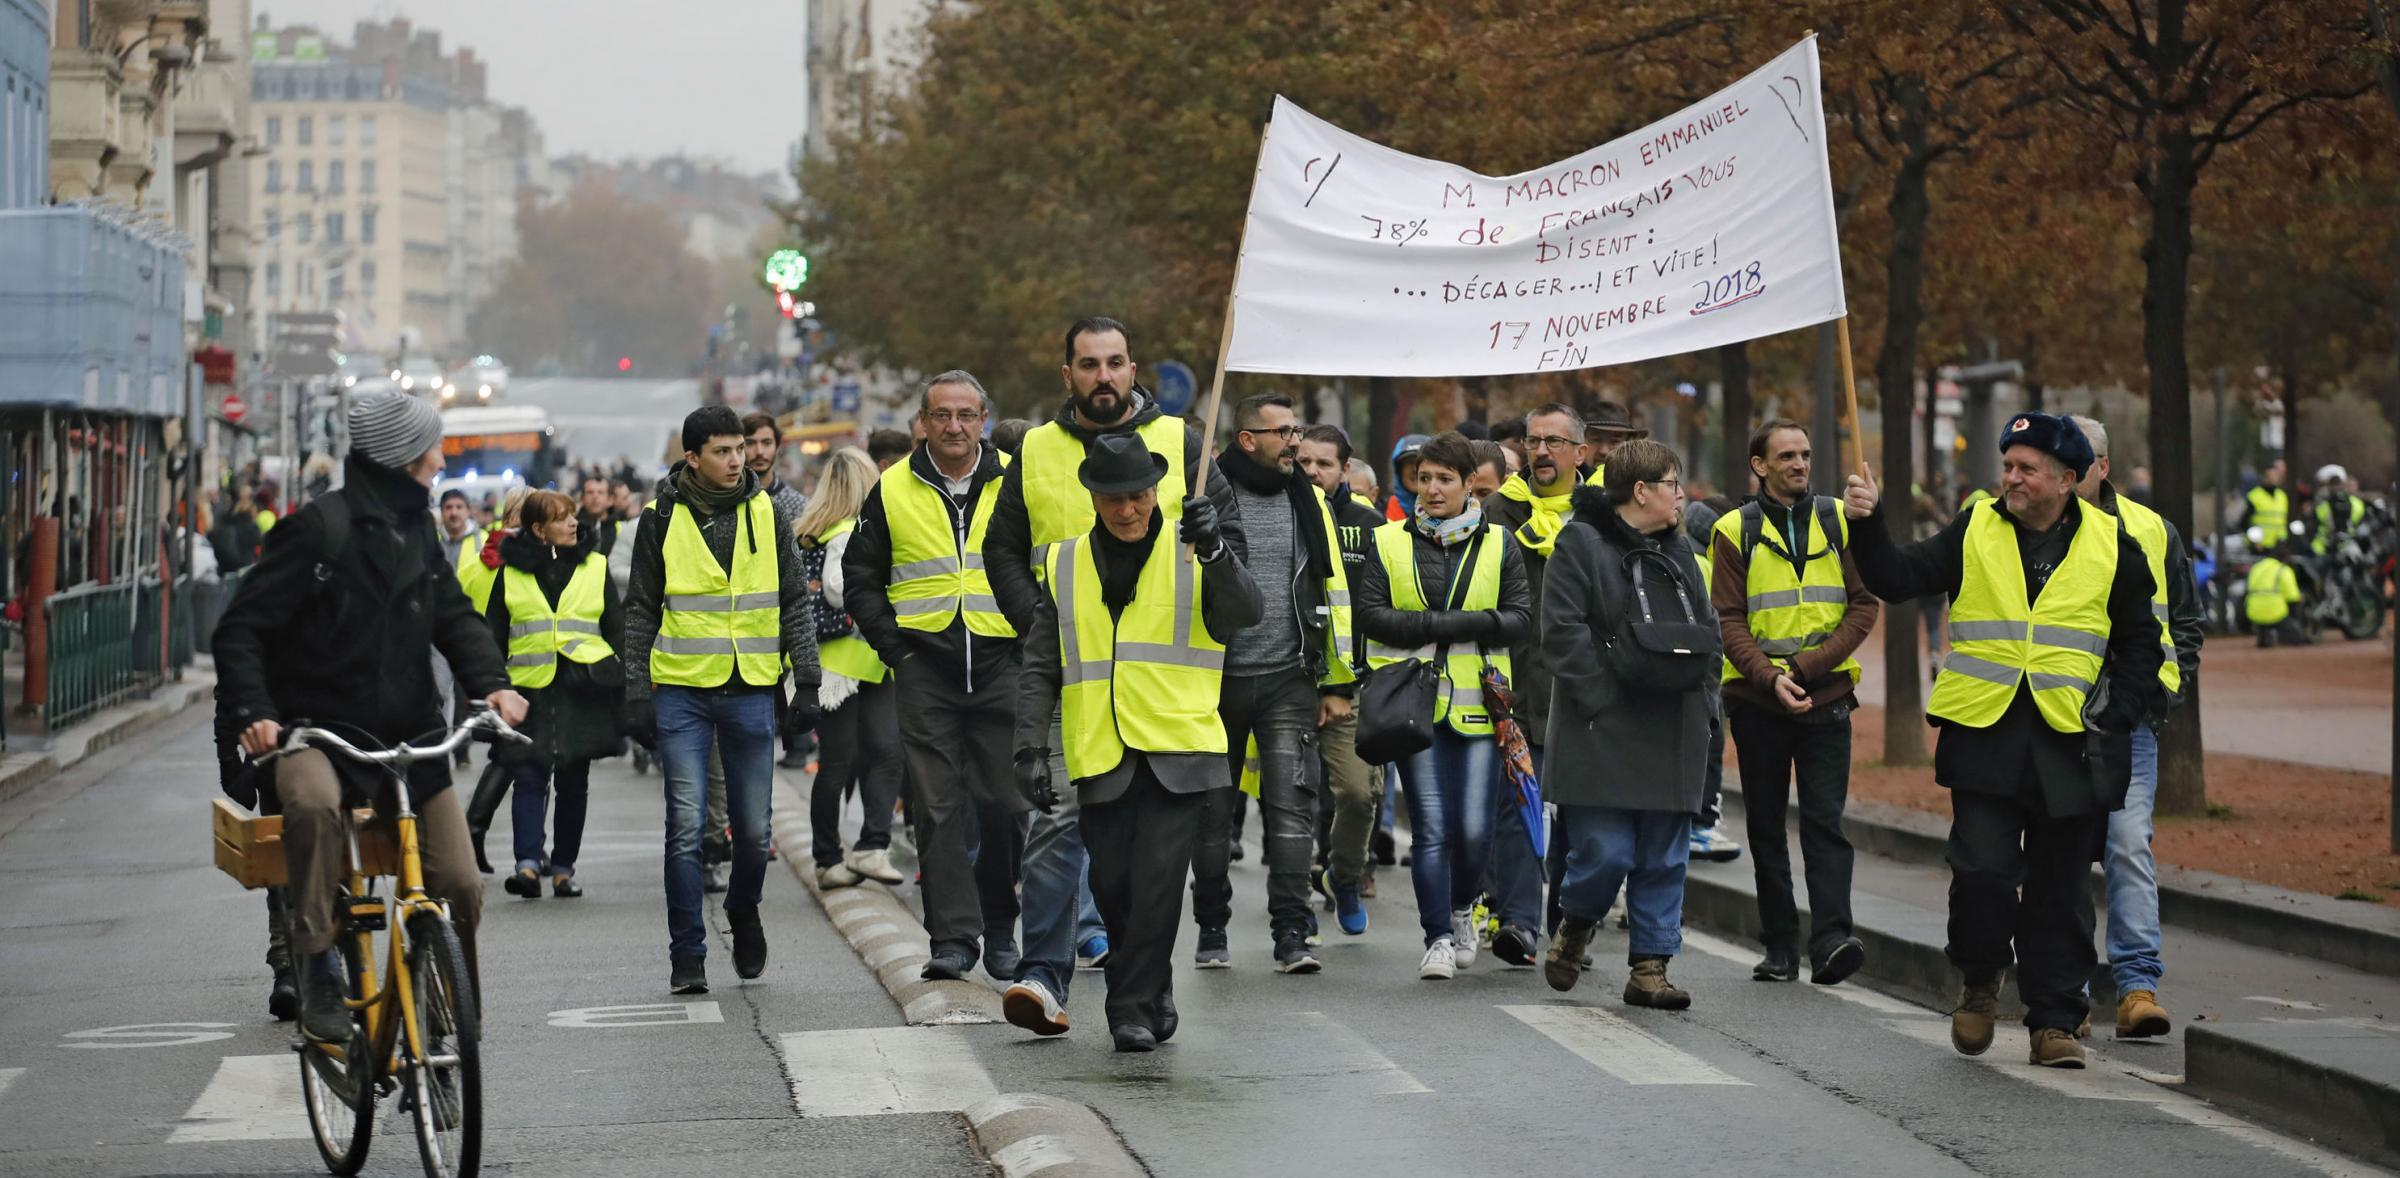 There were around 2000 demonstrations around France